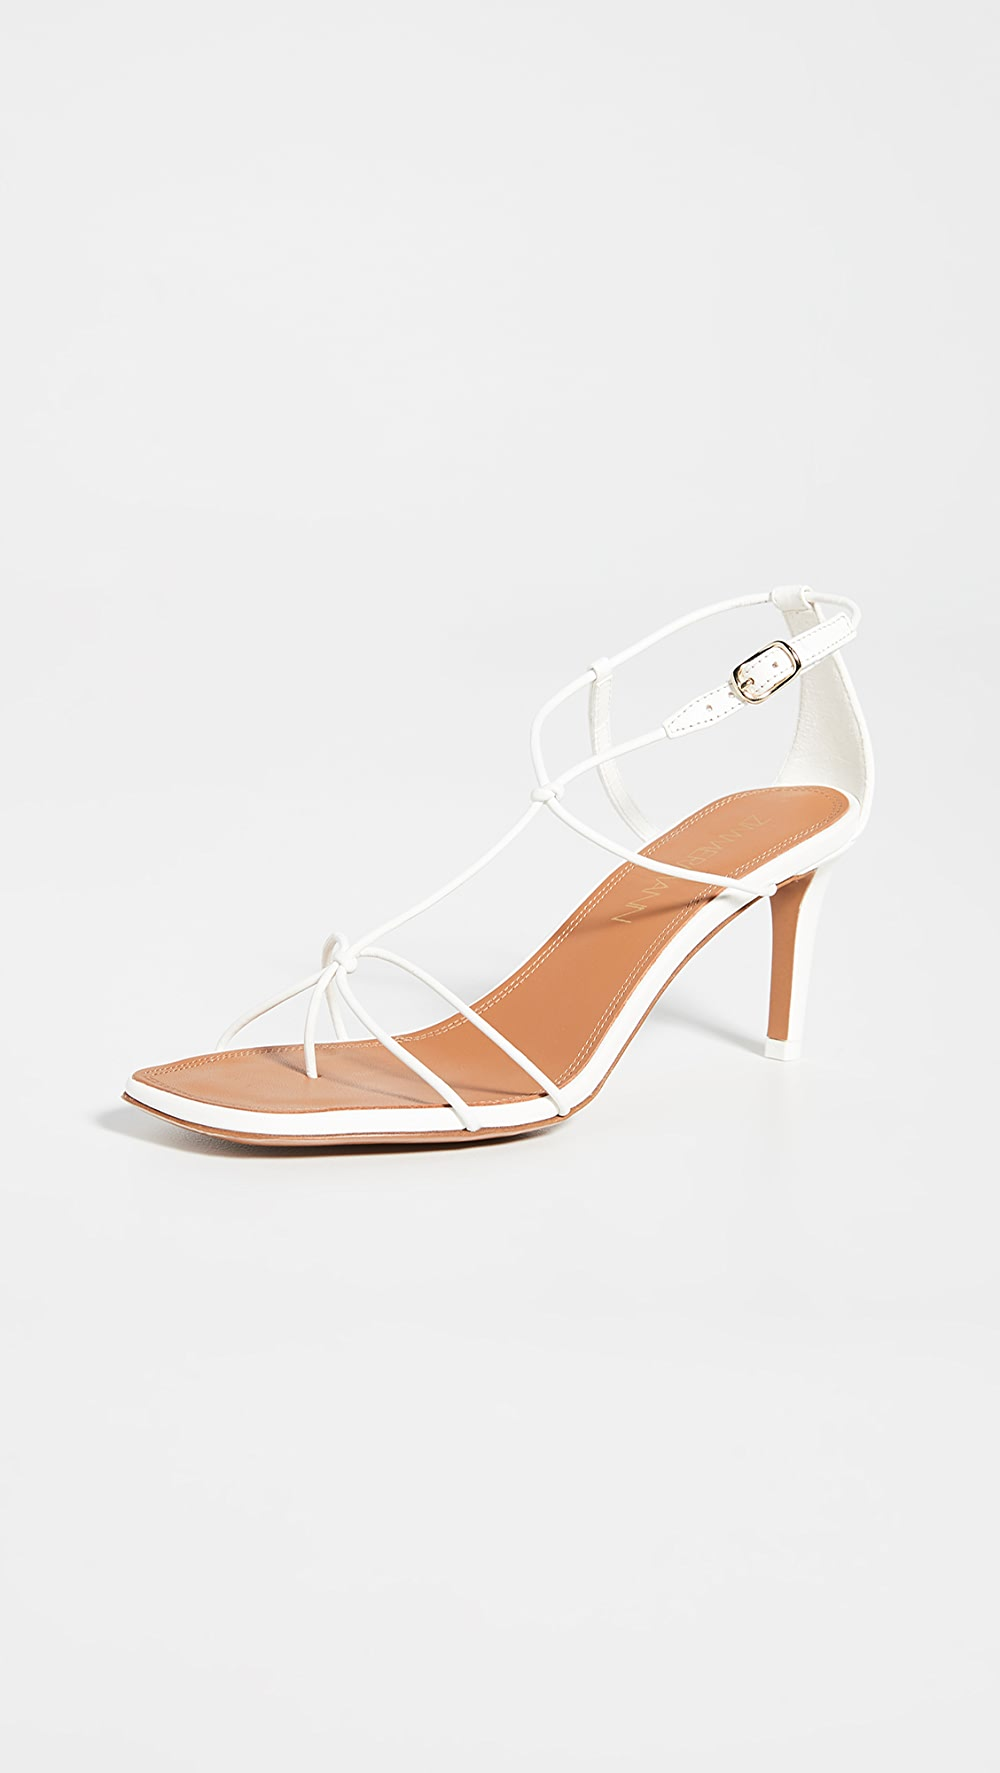 Independent Zimmermann - Strappy Heeled Sandals Up-To-Date Styling